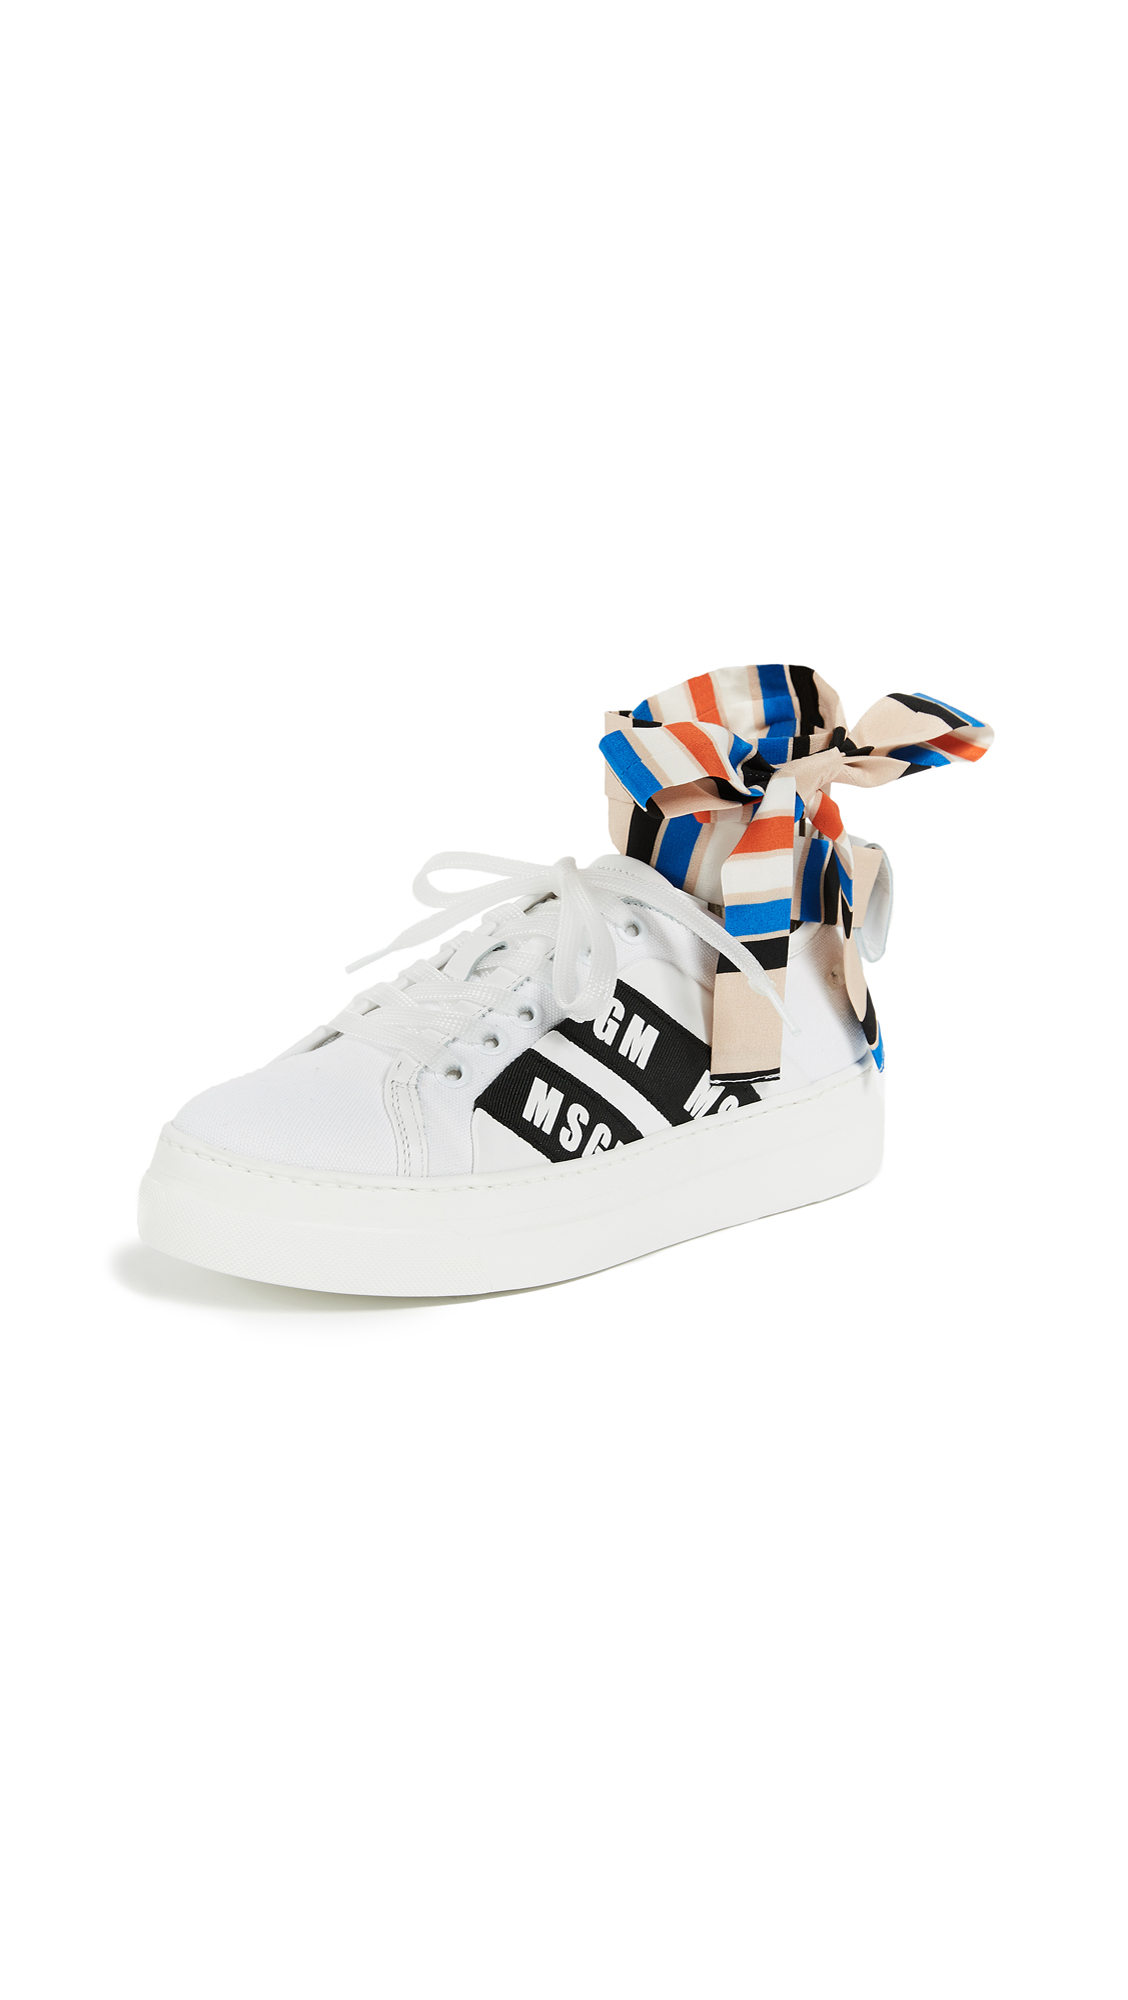 MSGM Ankle Knot Lace- Up Sneakers with Cup Sole - White/Stripe